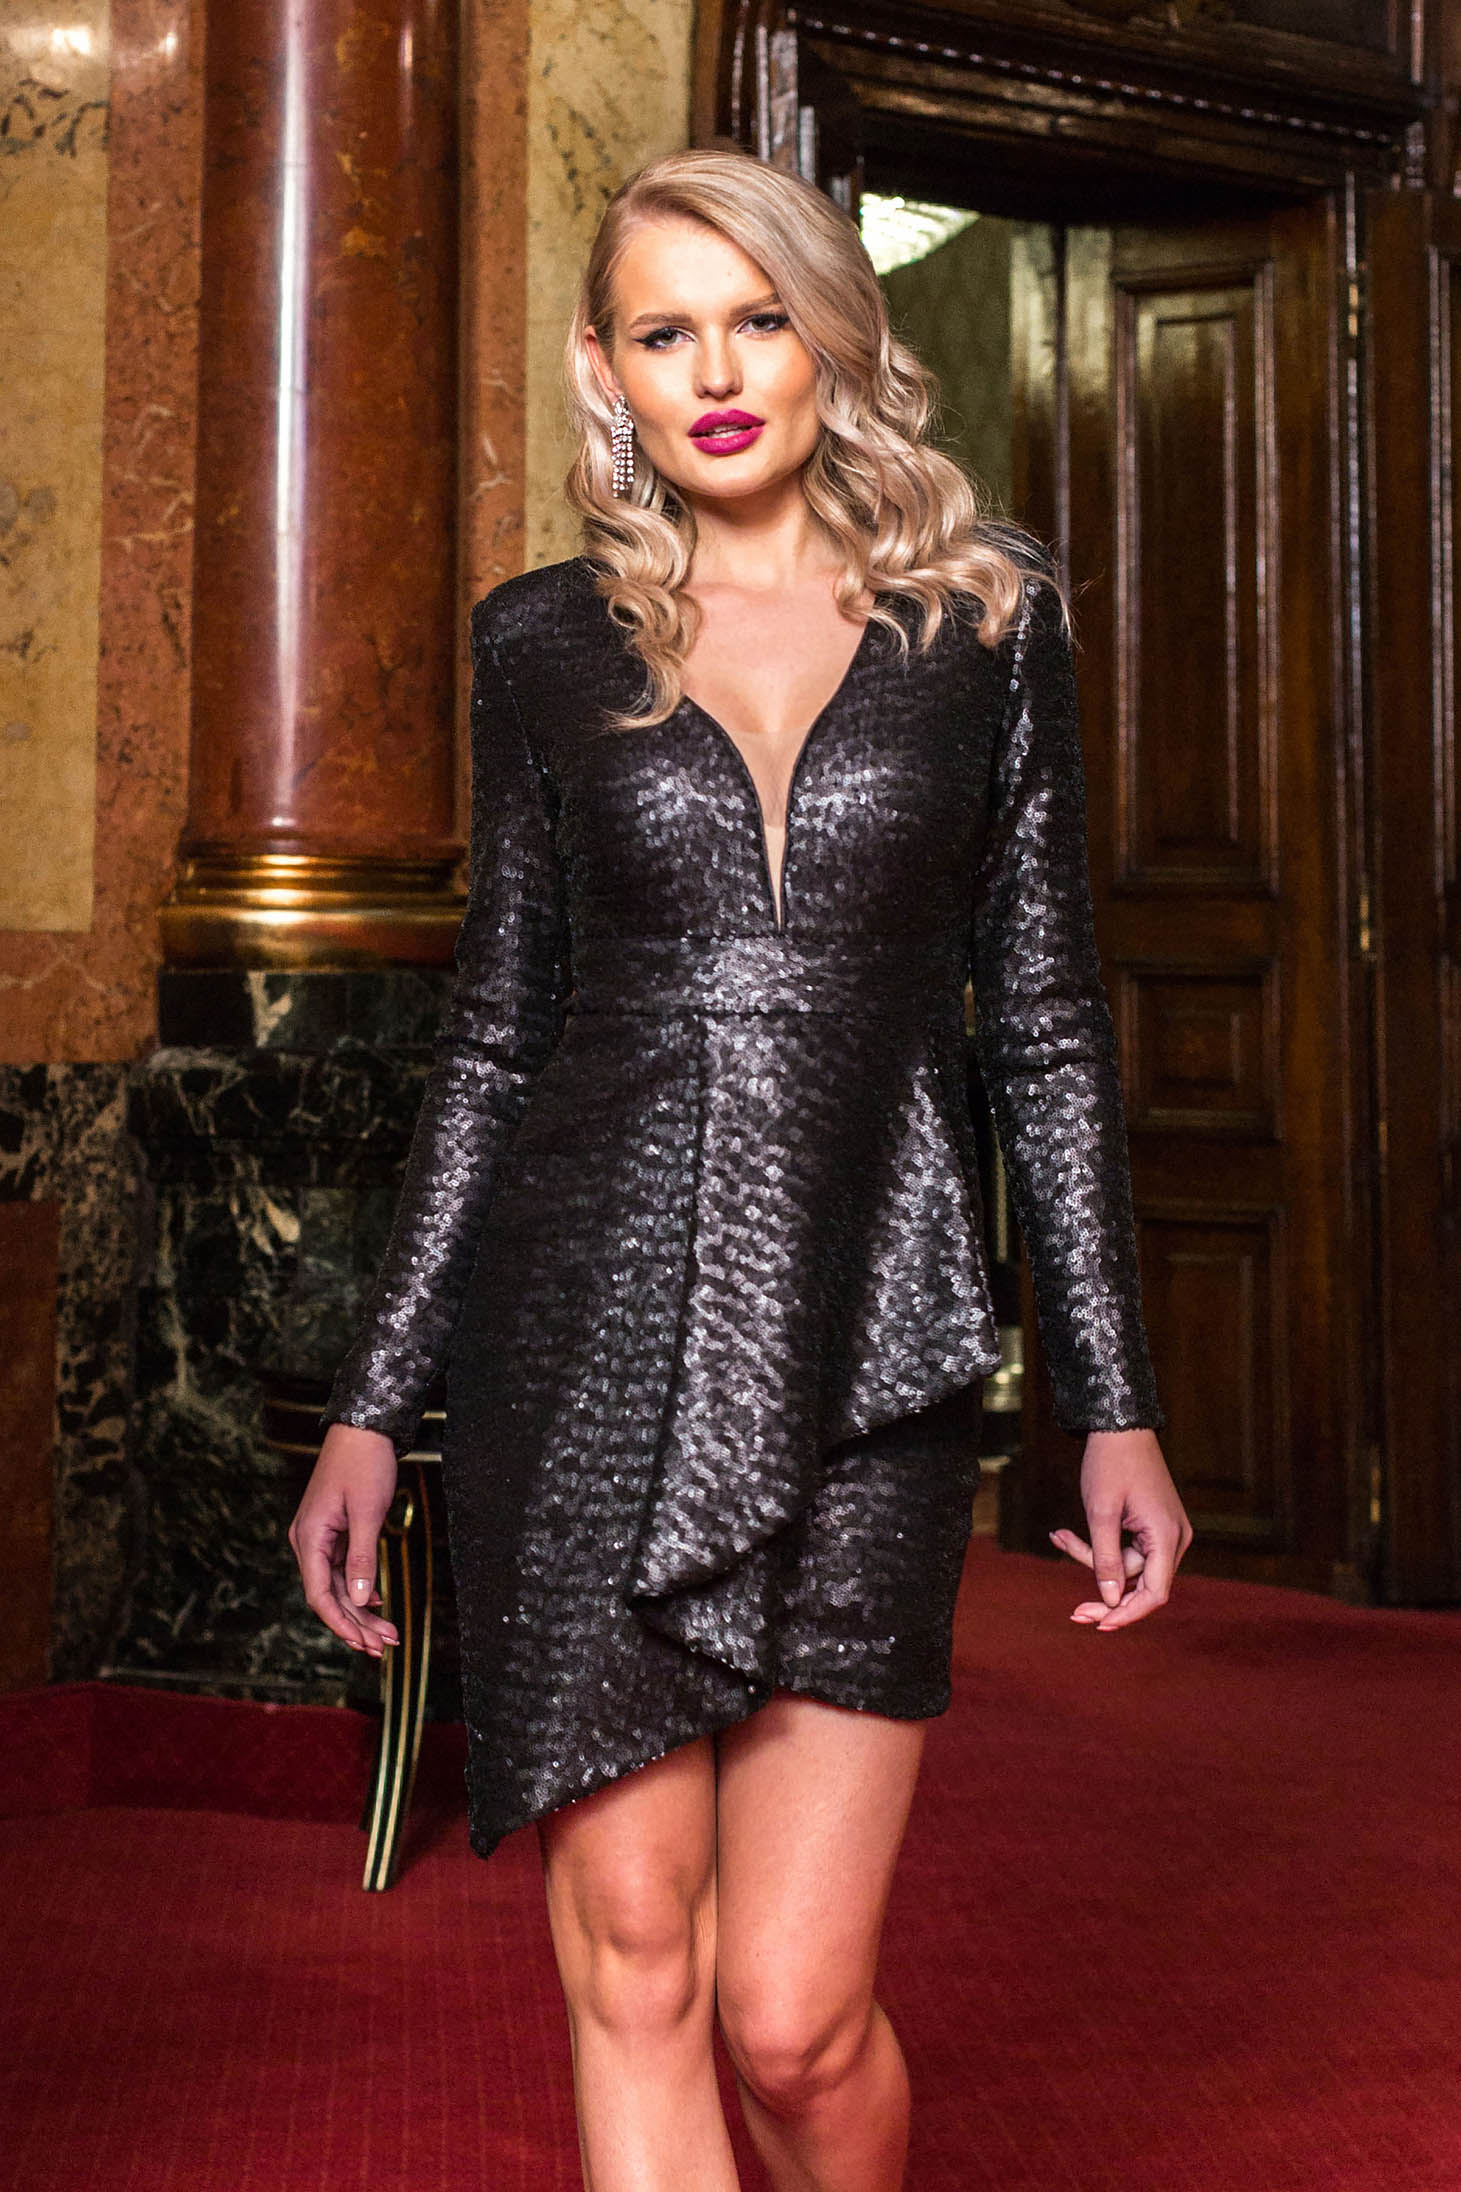 Black dress with sequins occasional asymmetrical with v-neckline pencil with deep cleavage